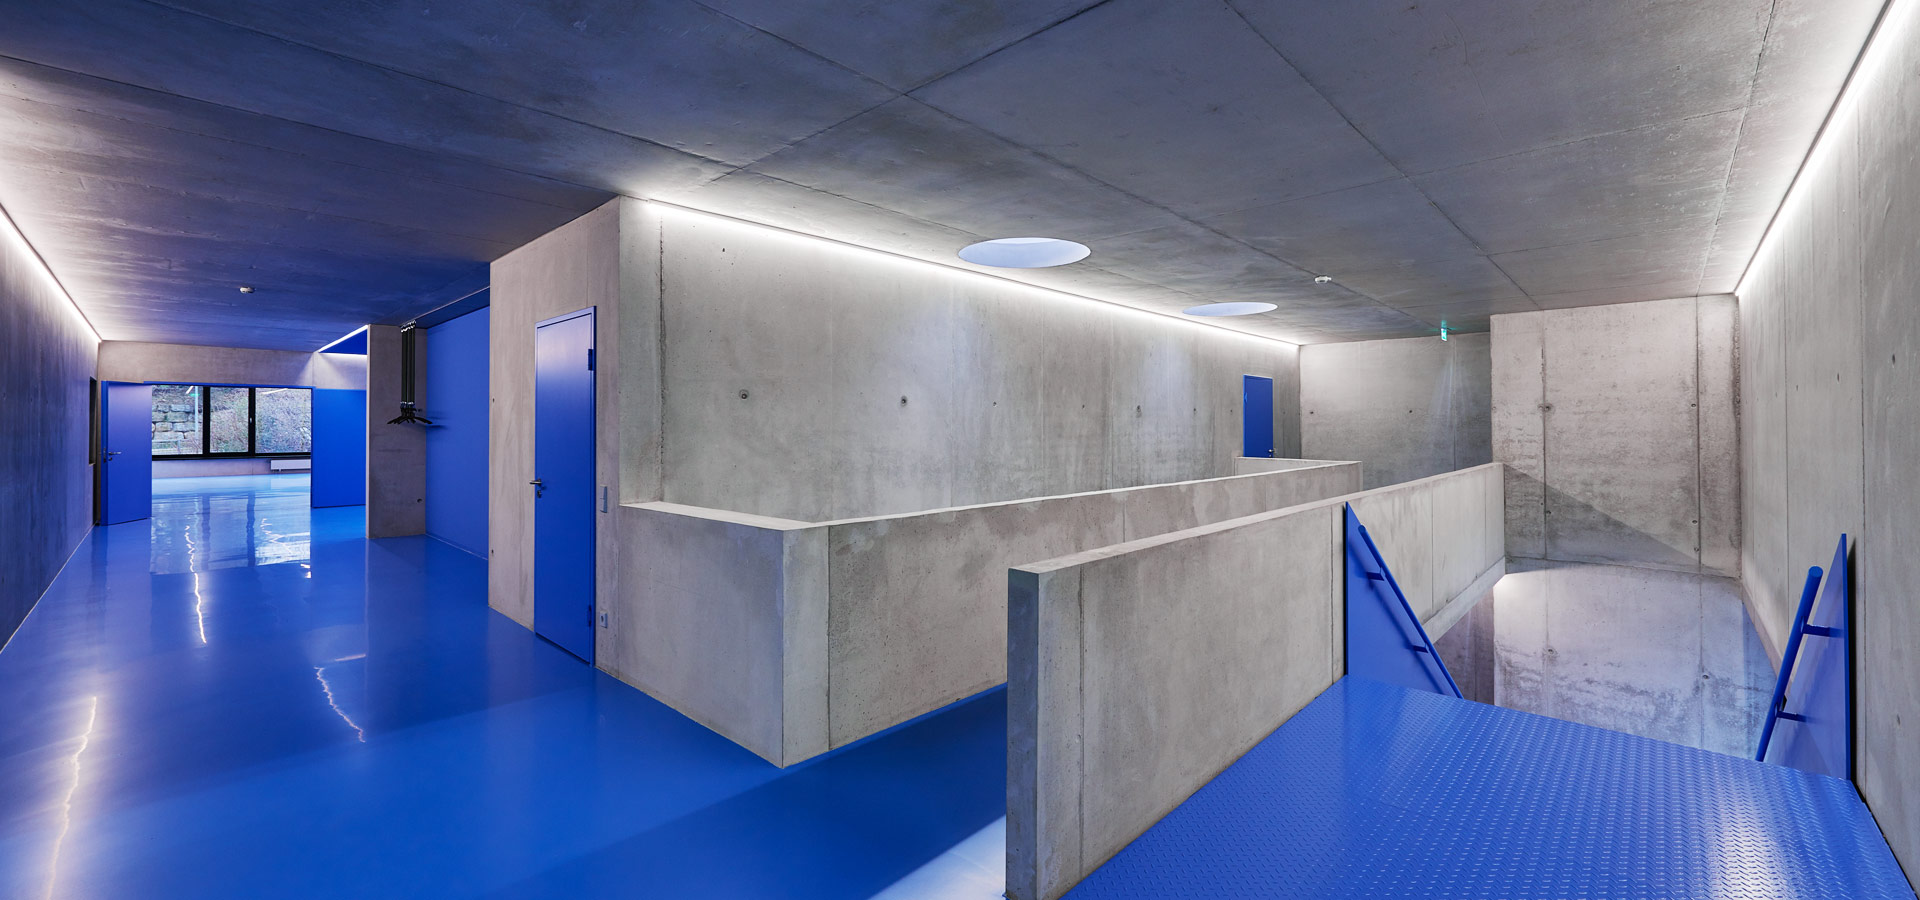 Luxsystem architectural lighting for fire station corridors led luminaire